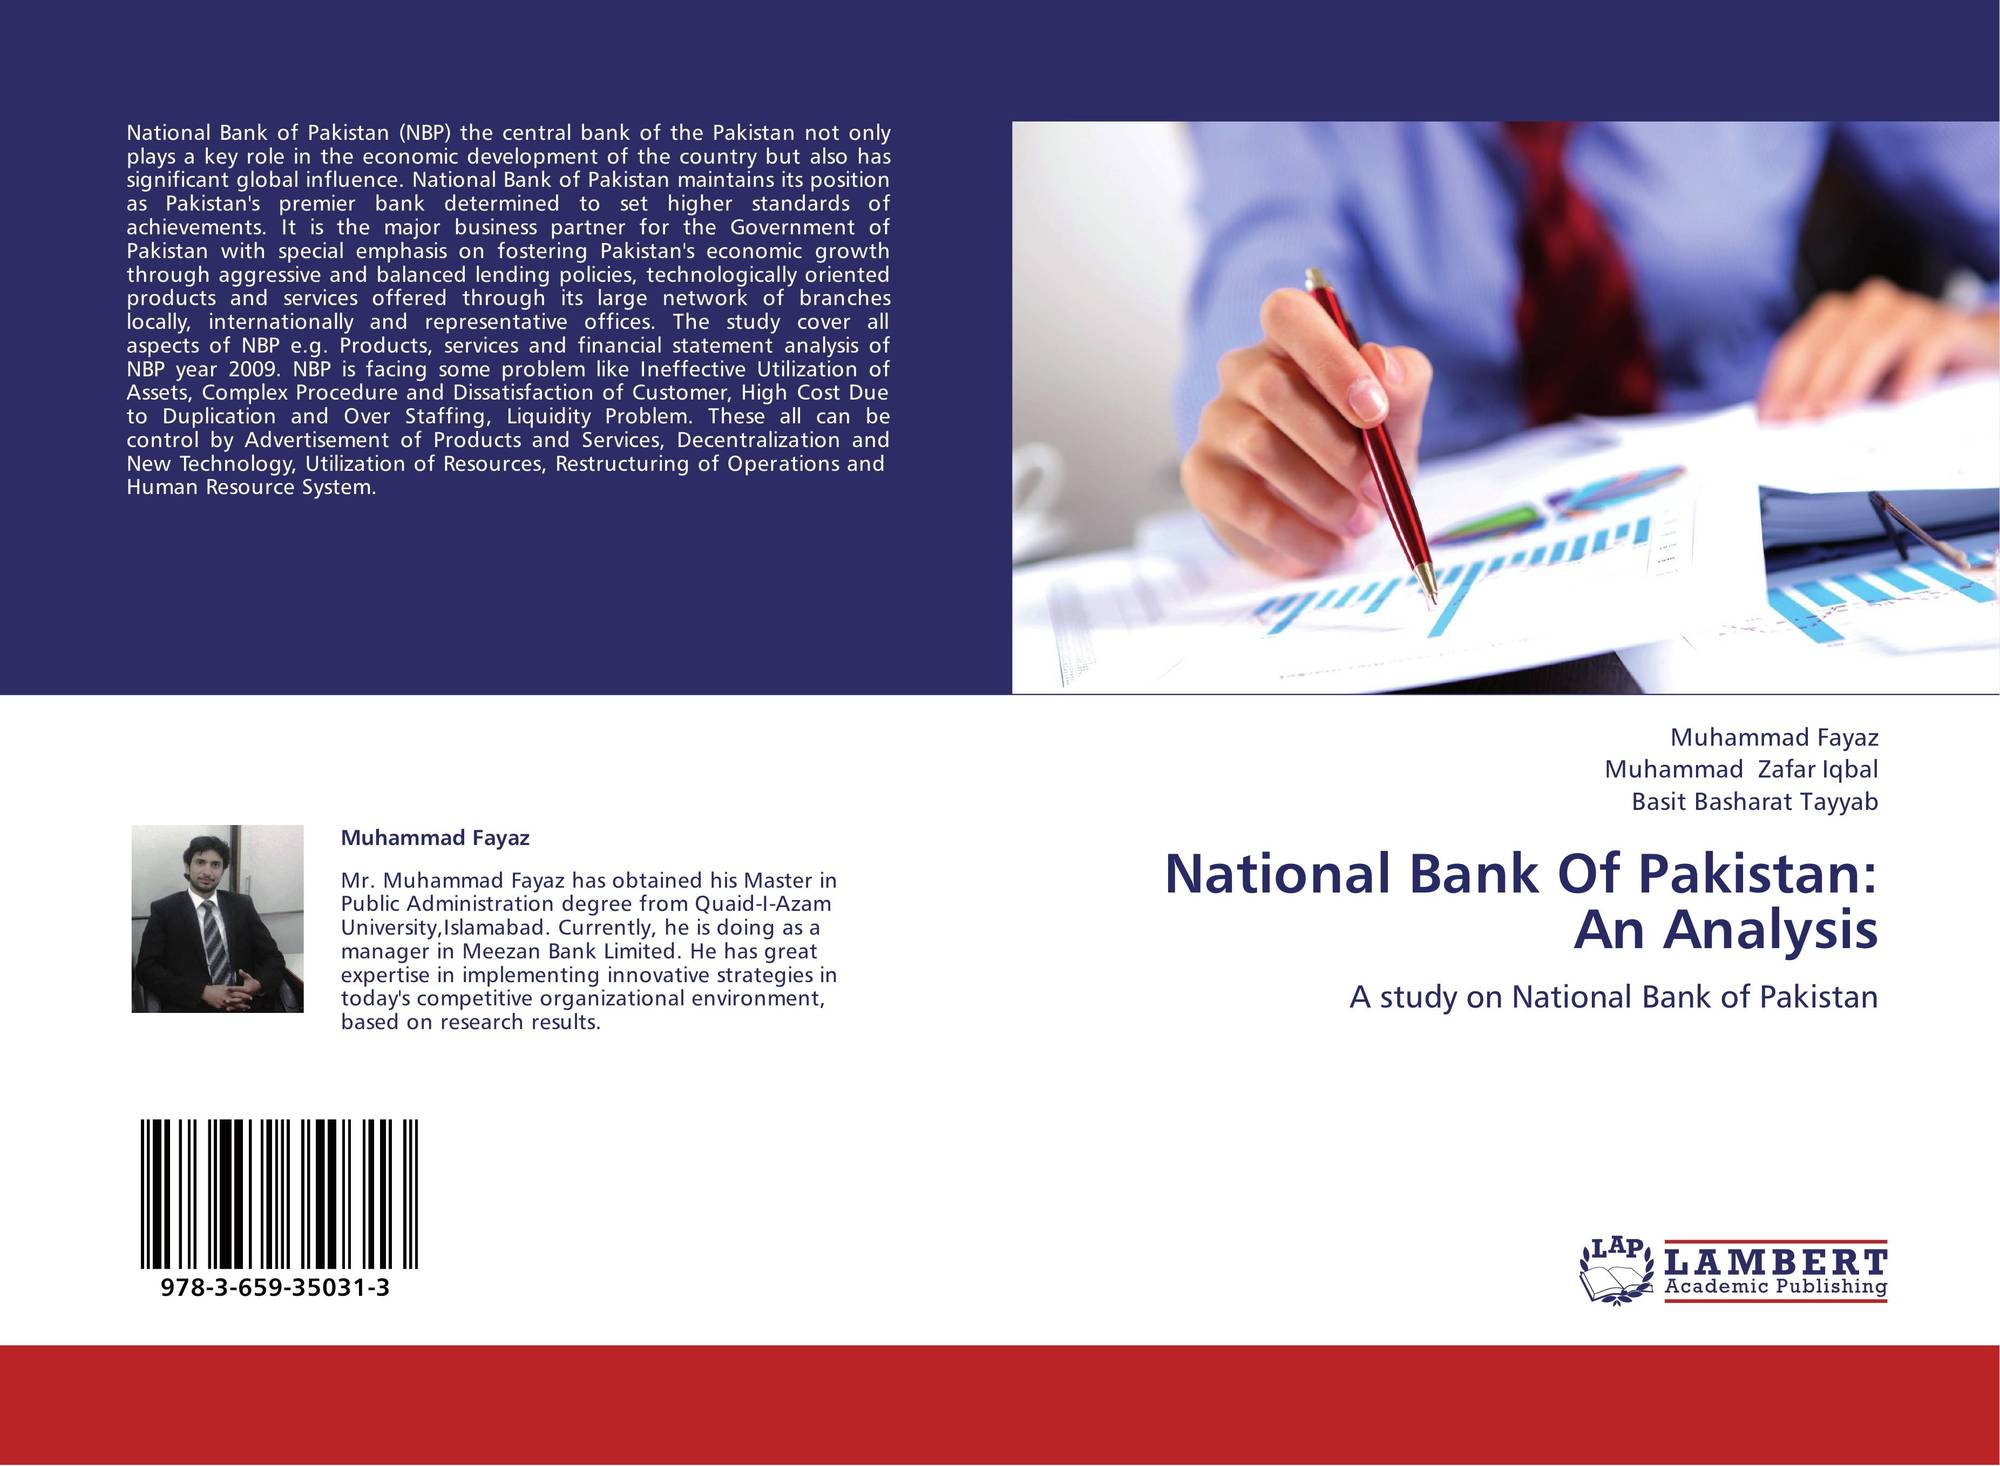 an analysis of the topic of the business of banks Swot analysis of banks autor: andrew • april 2, 2011 • case study • 1,011 words (5 pages) • 1,371 views • new branch of the school can be opened and operated in other states within the country as the political factor cover two issues that affect the ability of organization in their businesses.